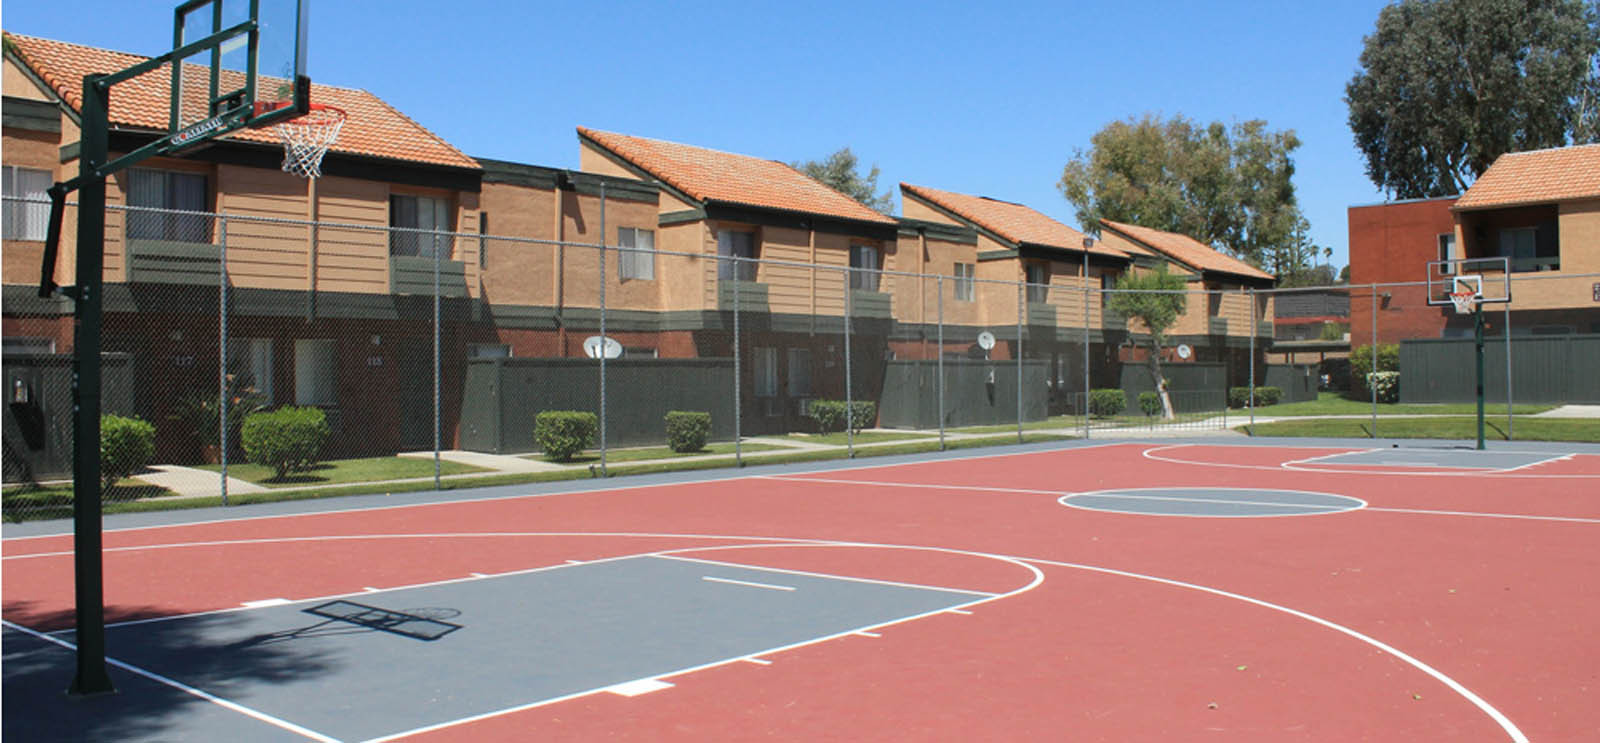 south west covina apartments | brookhollow apartments in west